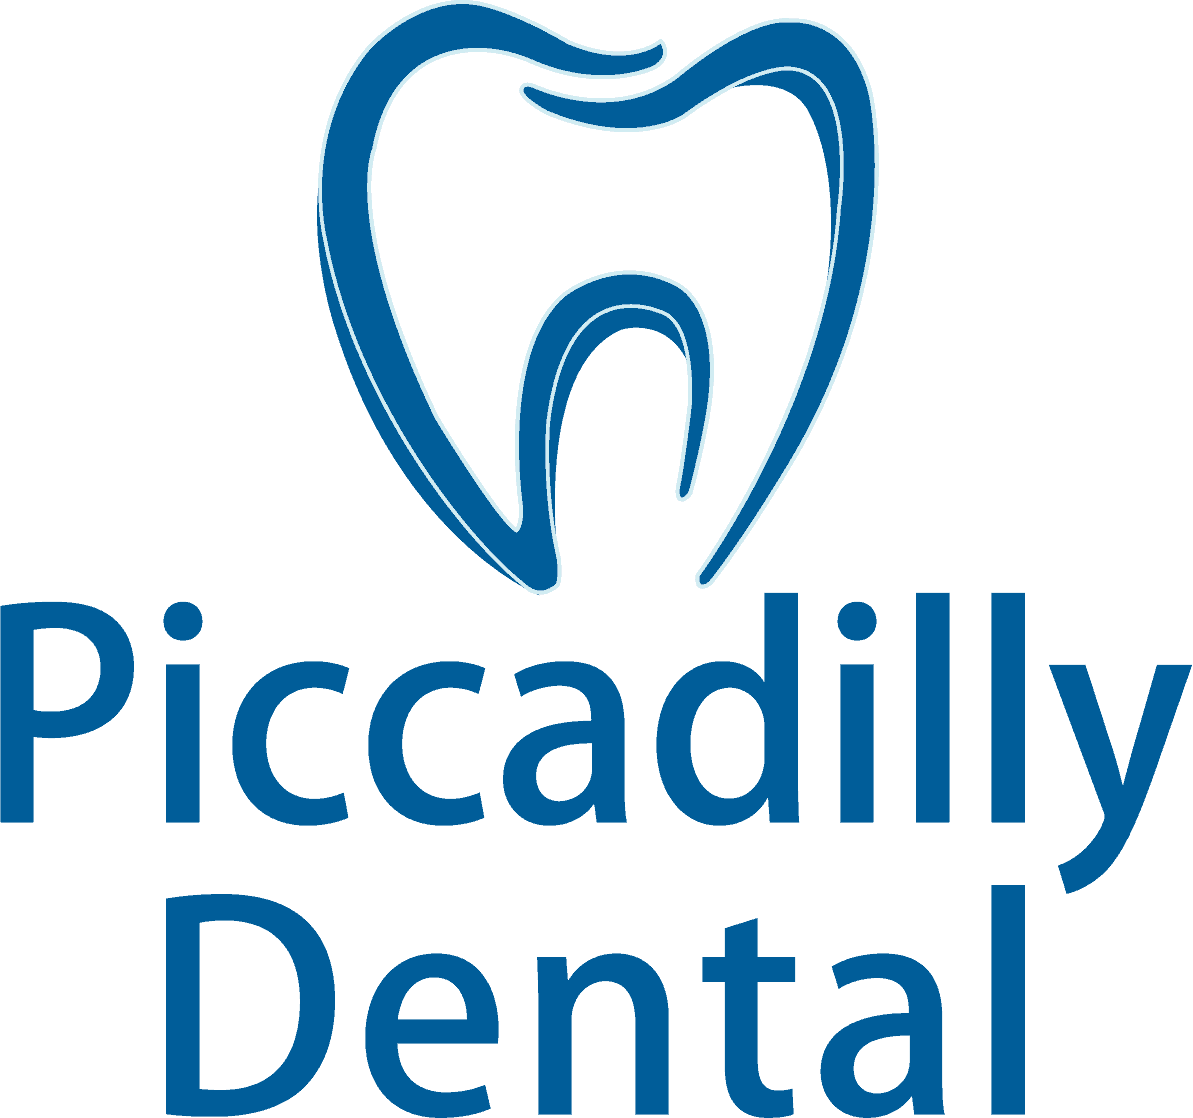 Piccadilly Dental